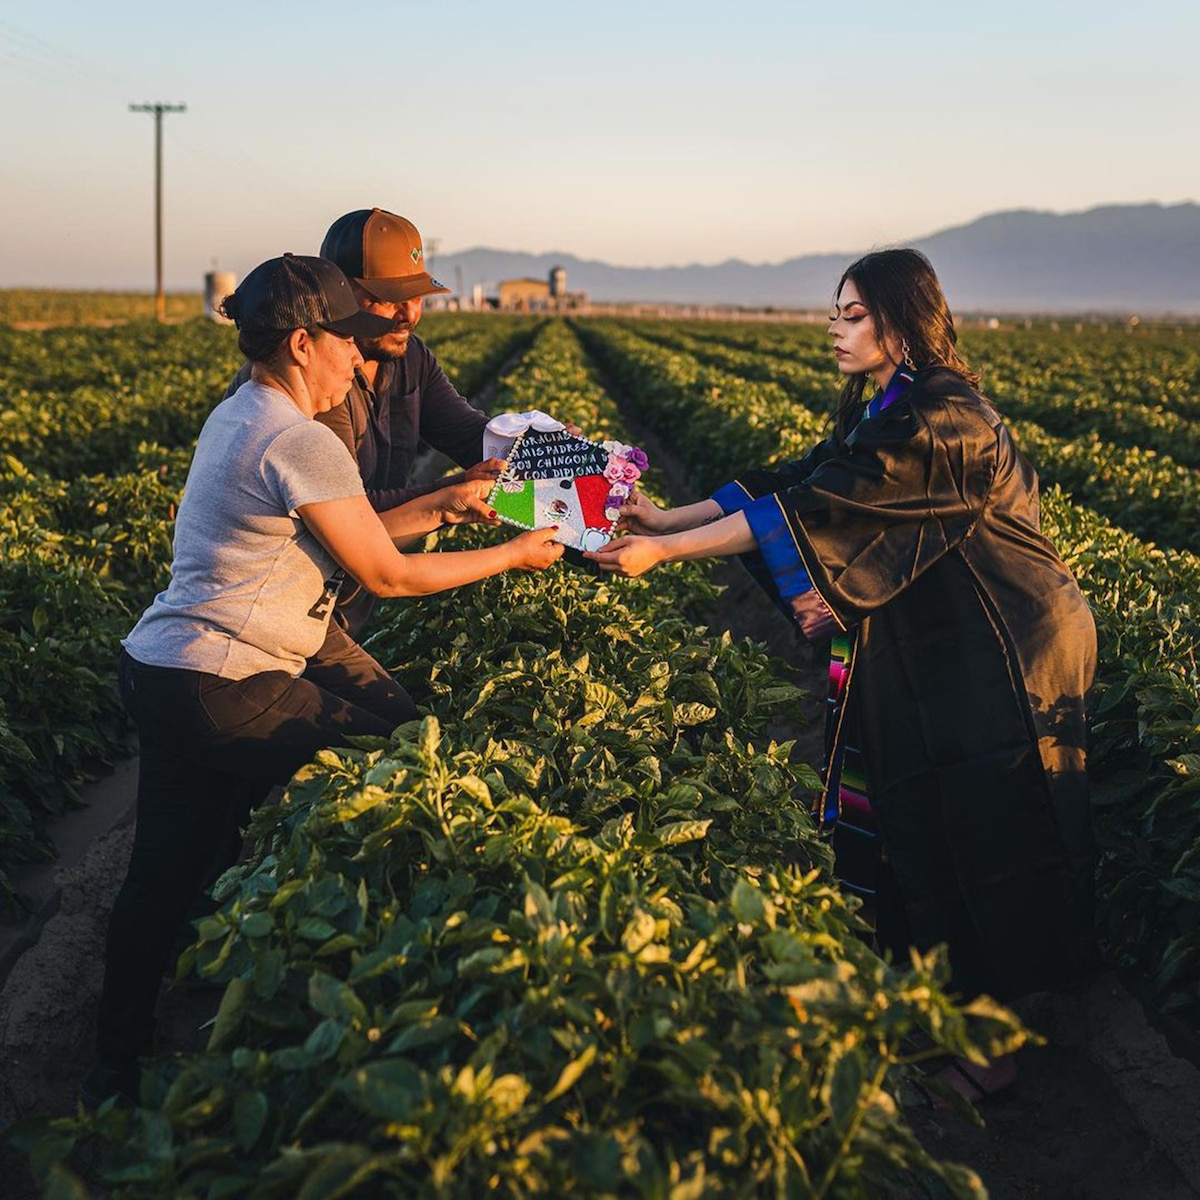 Jennifer Rocha and Her Parents in Produce Fields